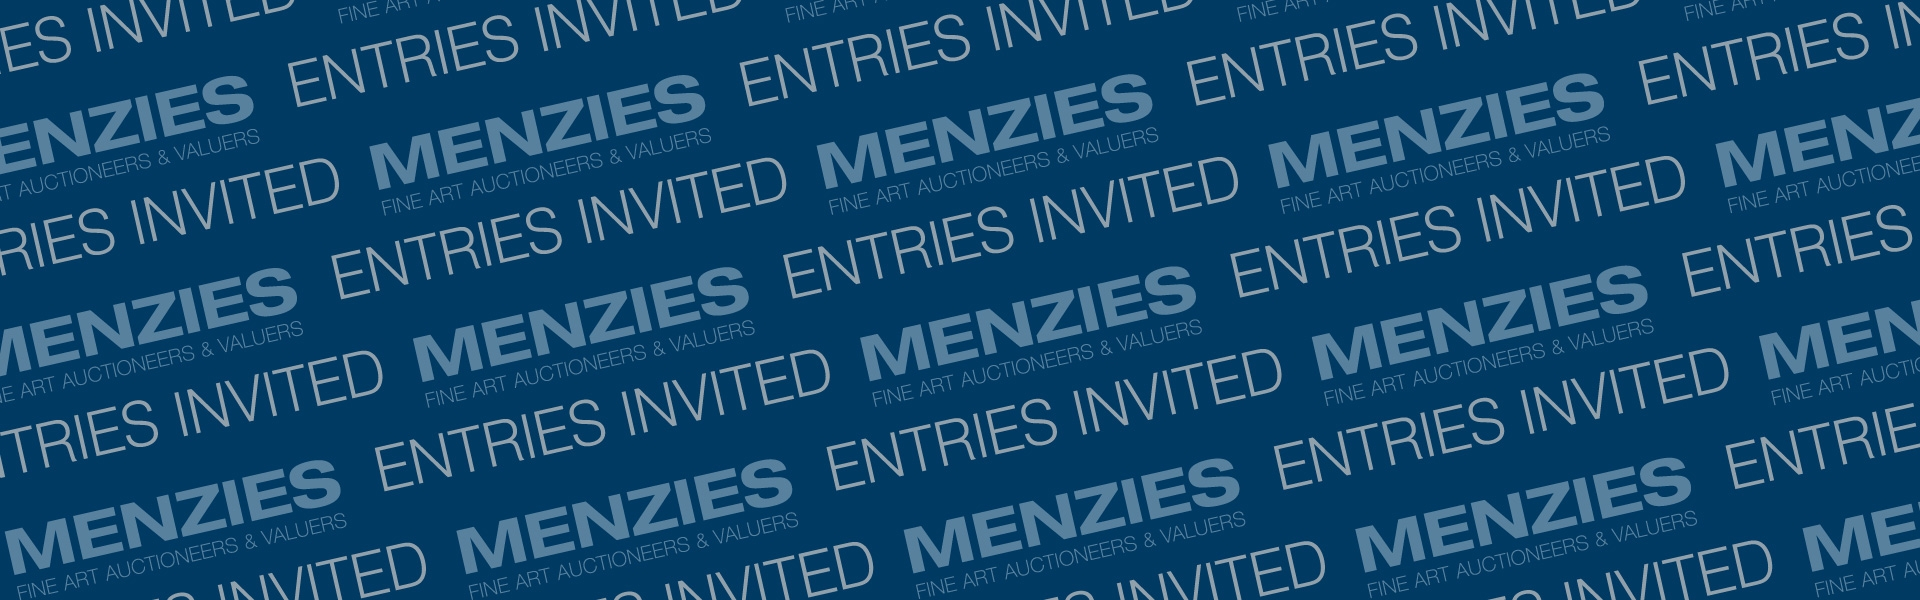 Entries Invited